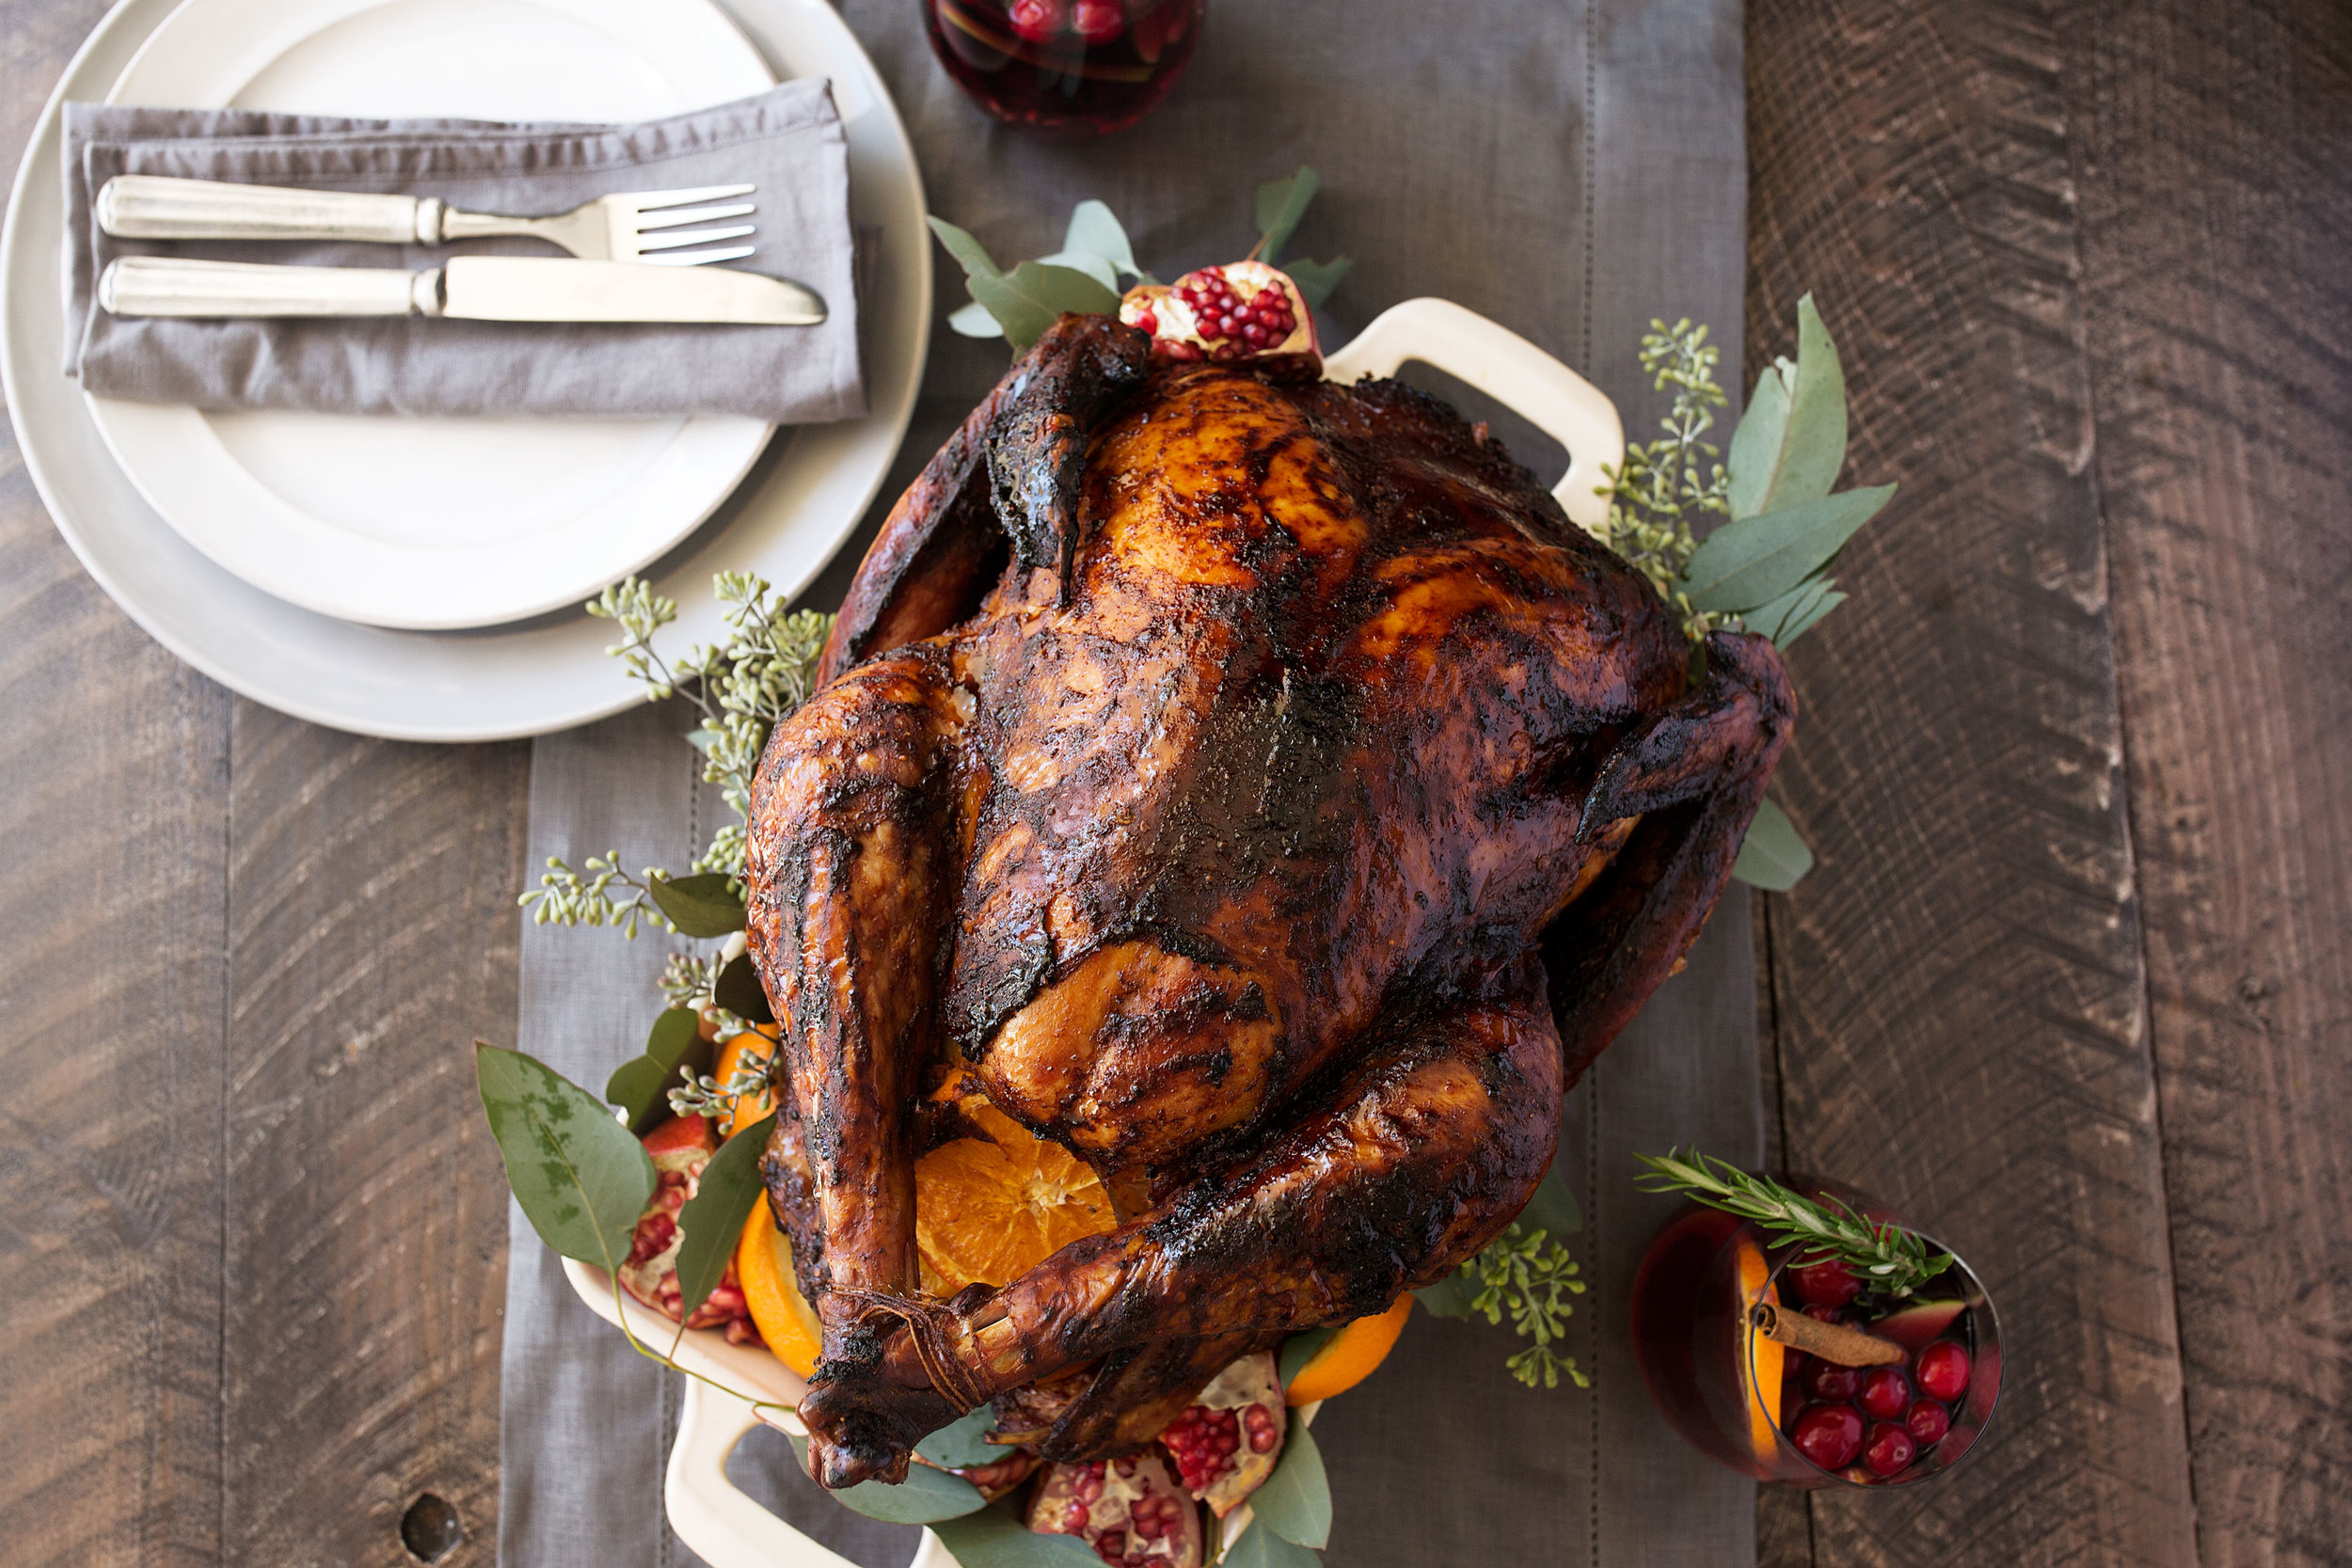 Home-depot-chili-rubbed-turkey-with-oranges-6.jpg